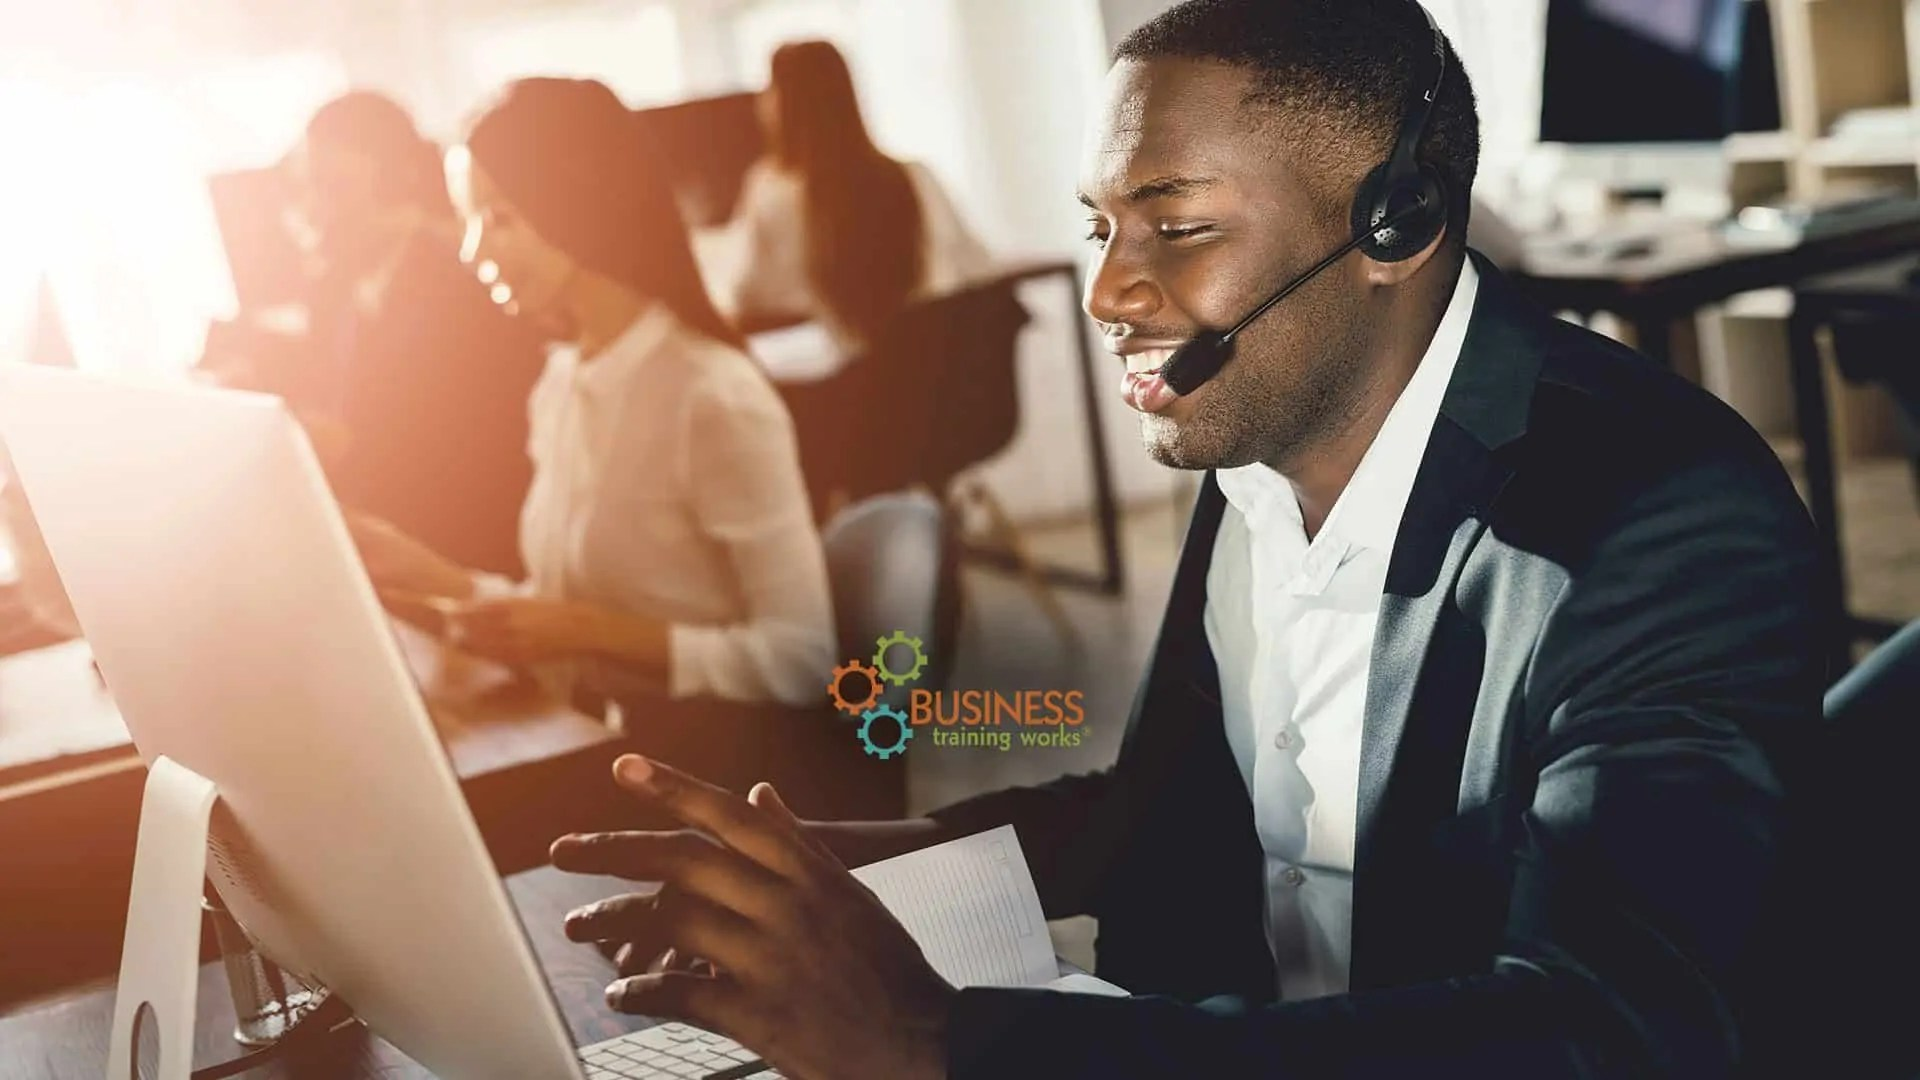 Customer Service Training for Call Center Employees